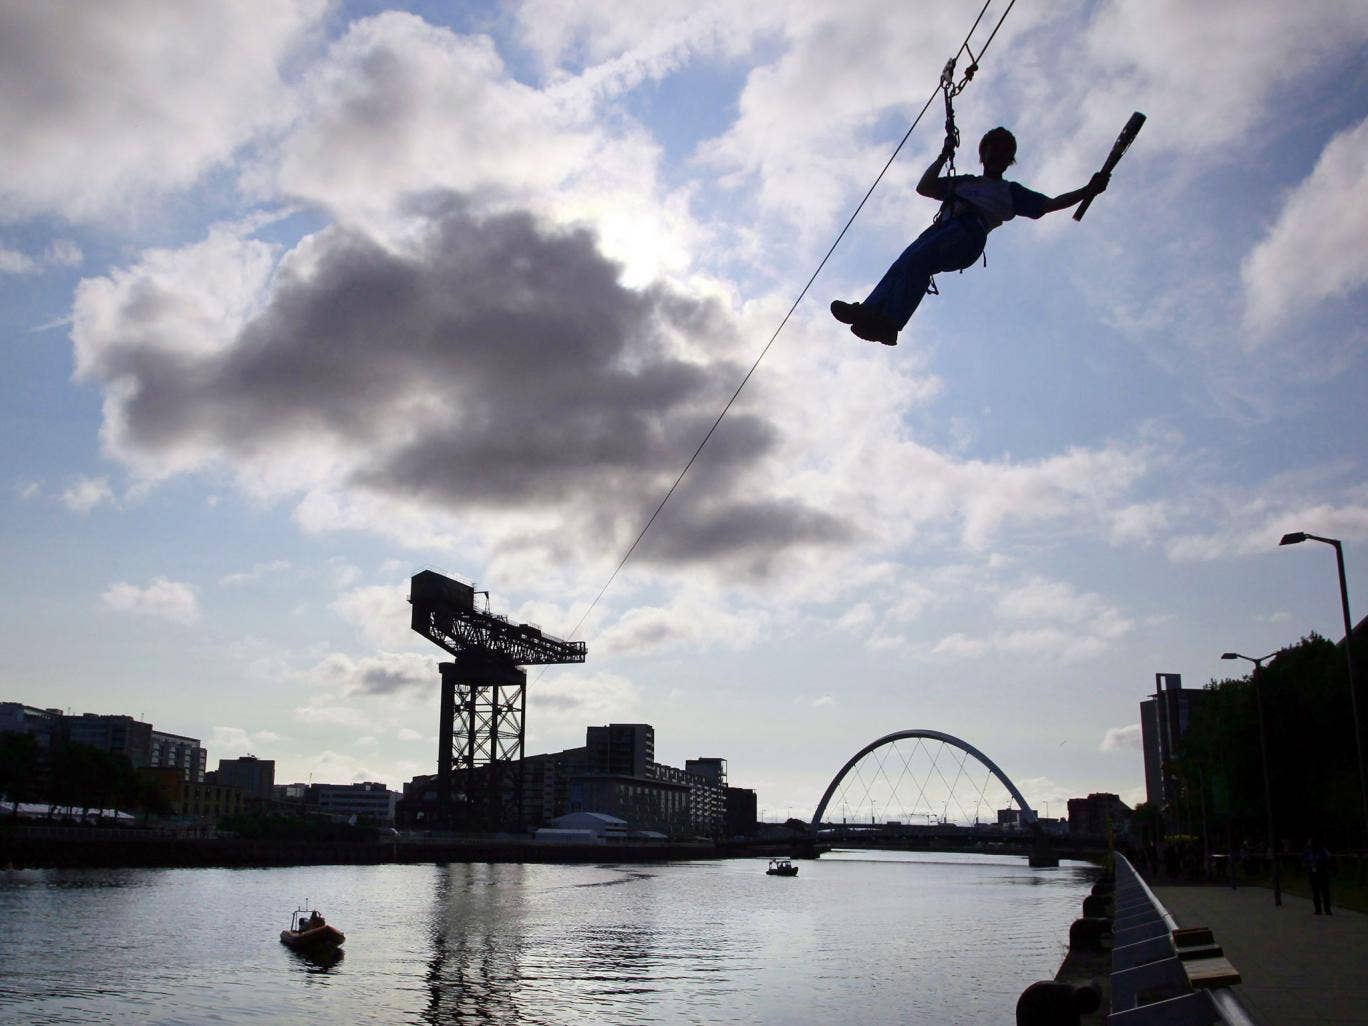 Batonbearer 010 Nina Saunders carrying the Glasgow 2014 Queen's Baton on a zip wire from Finnieston Crane in Glasgow